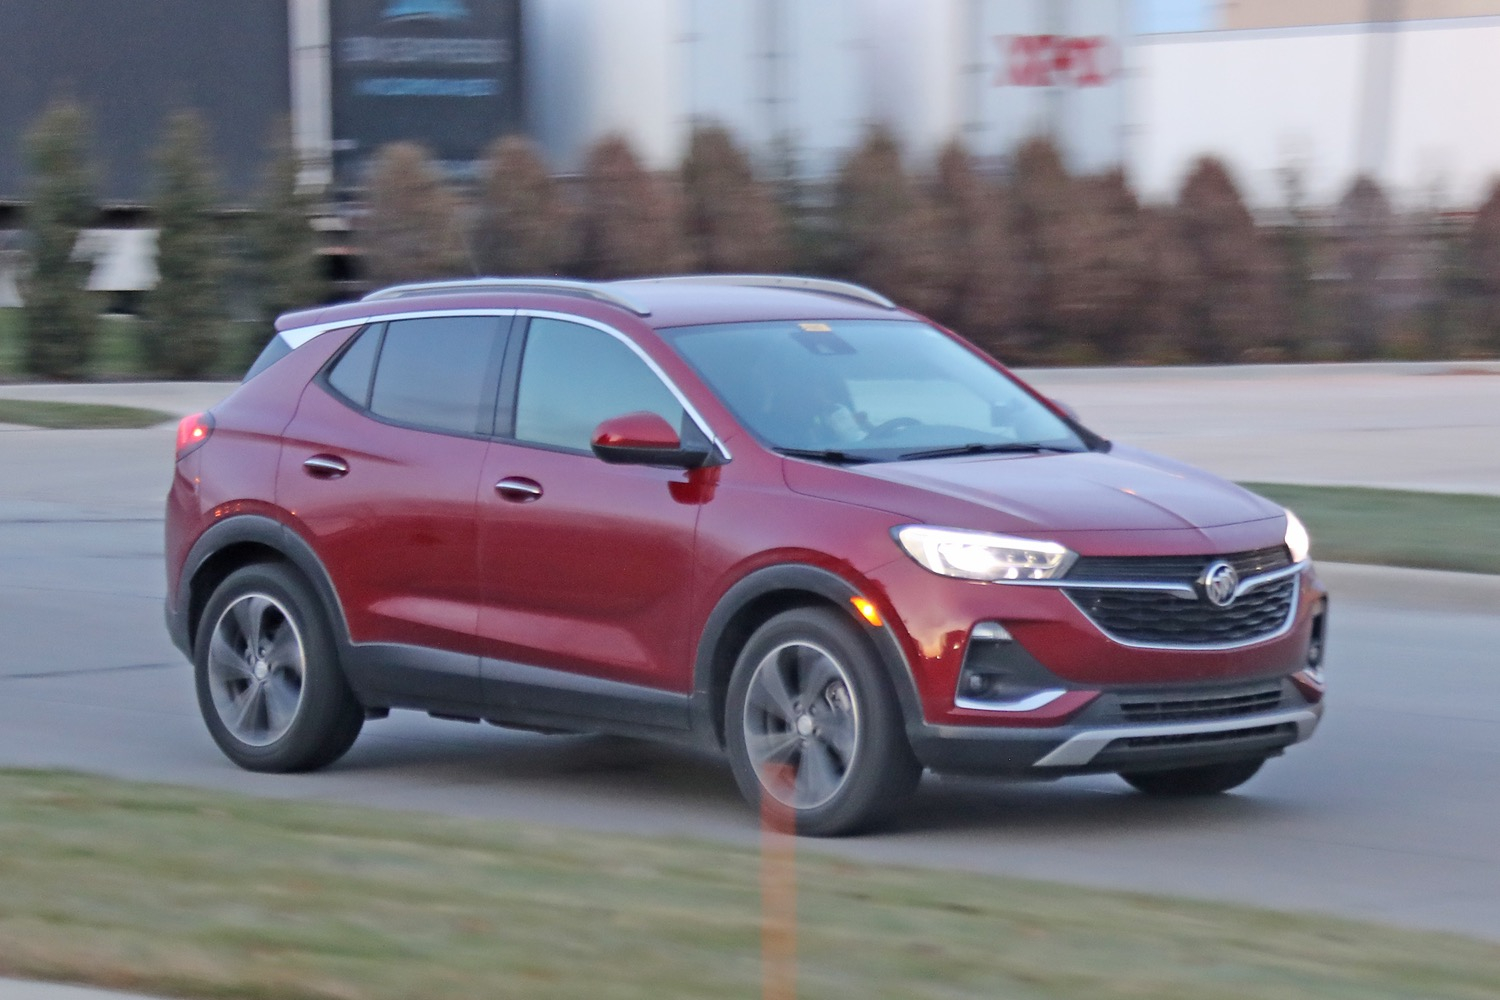 2021 Buick Encore Gx Isn't Getting New Fascias After All 2021 Buick Encore Used, Updates, Wheels